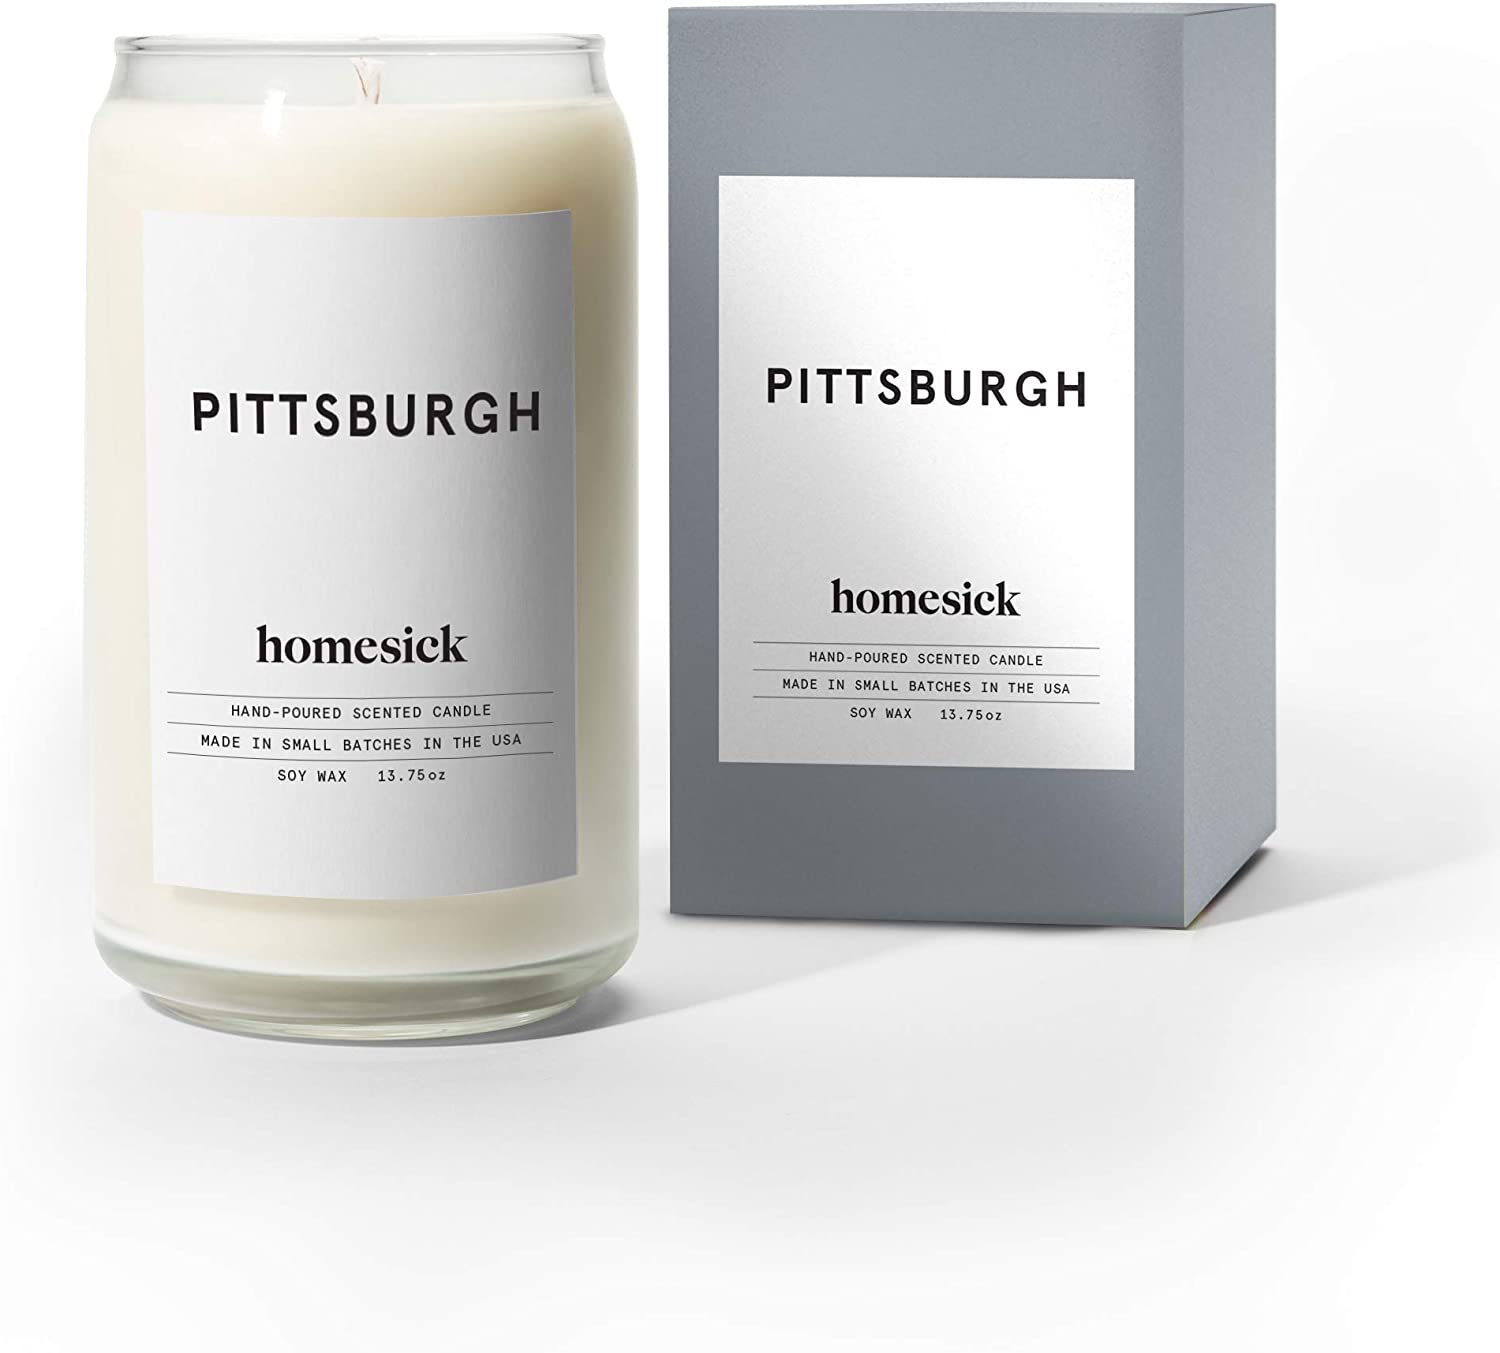 Homesick Scented Candle, Pittsburgh